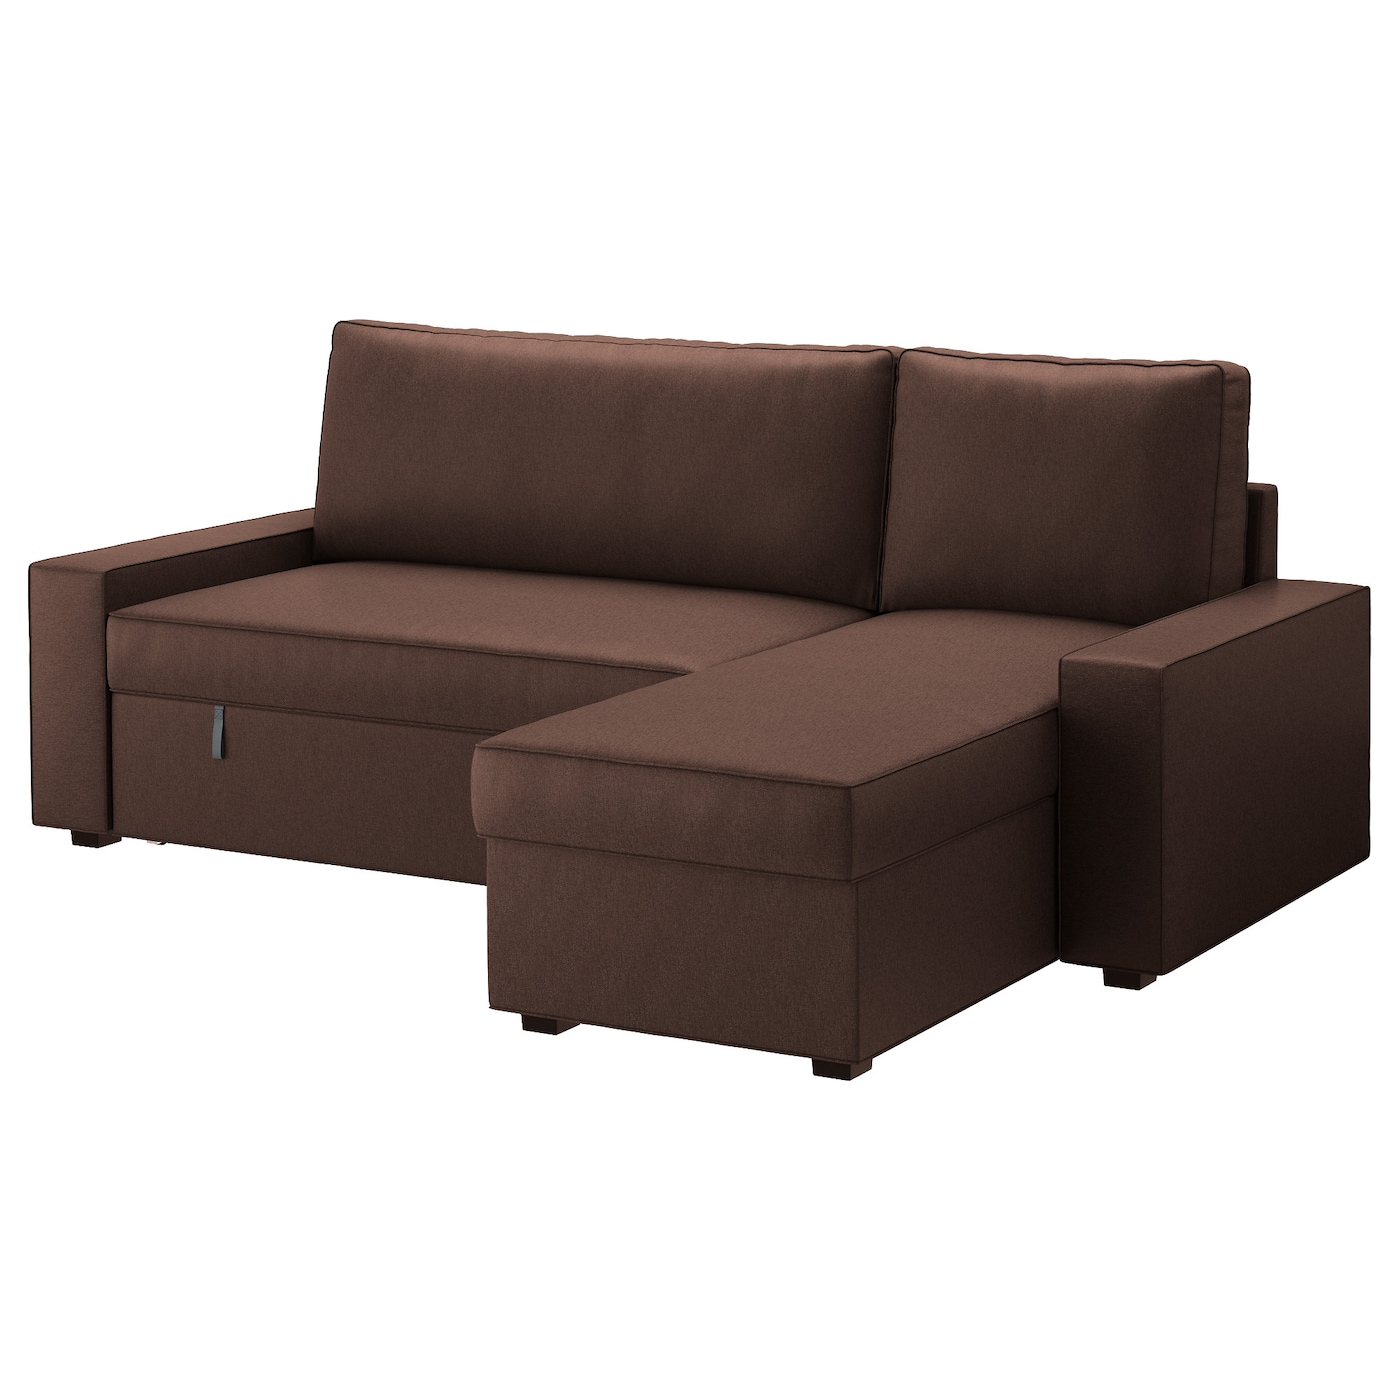 Vilasund sofa bed with chaise longue borred dark brown ikea for Chaise longue ikea